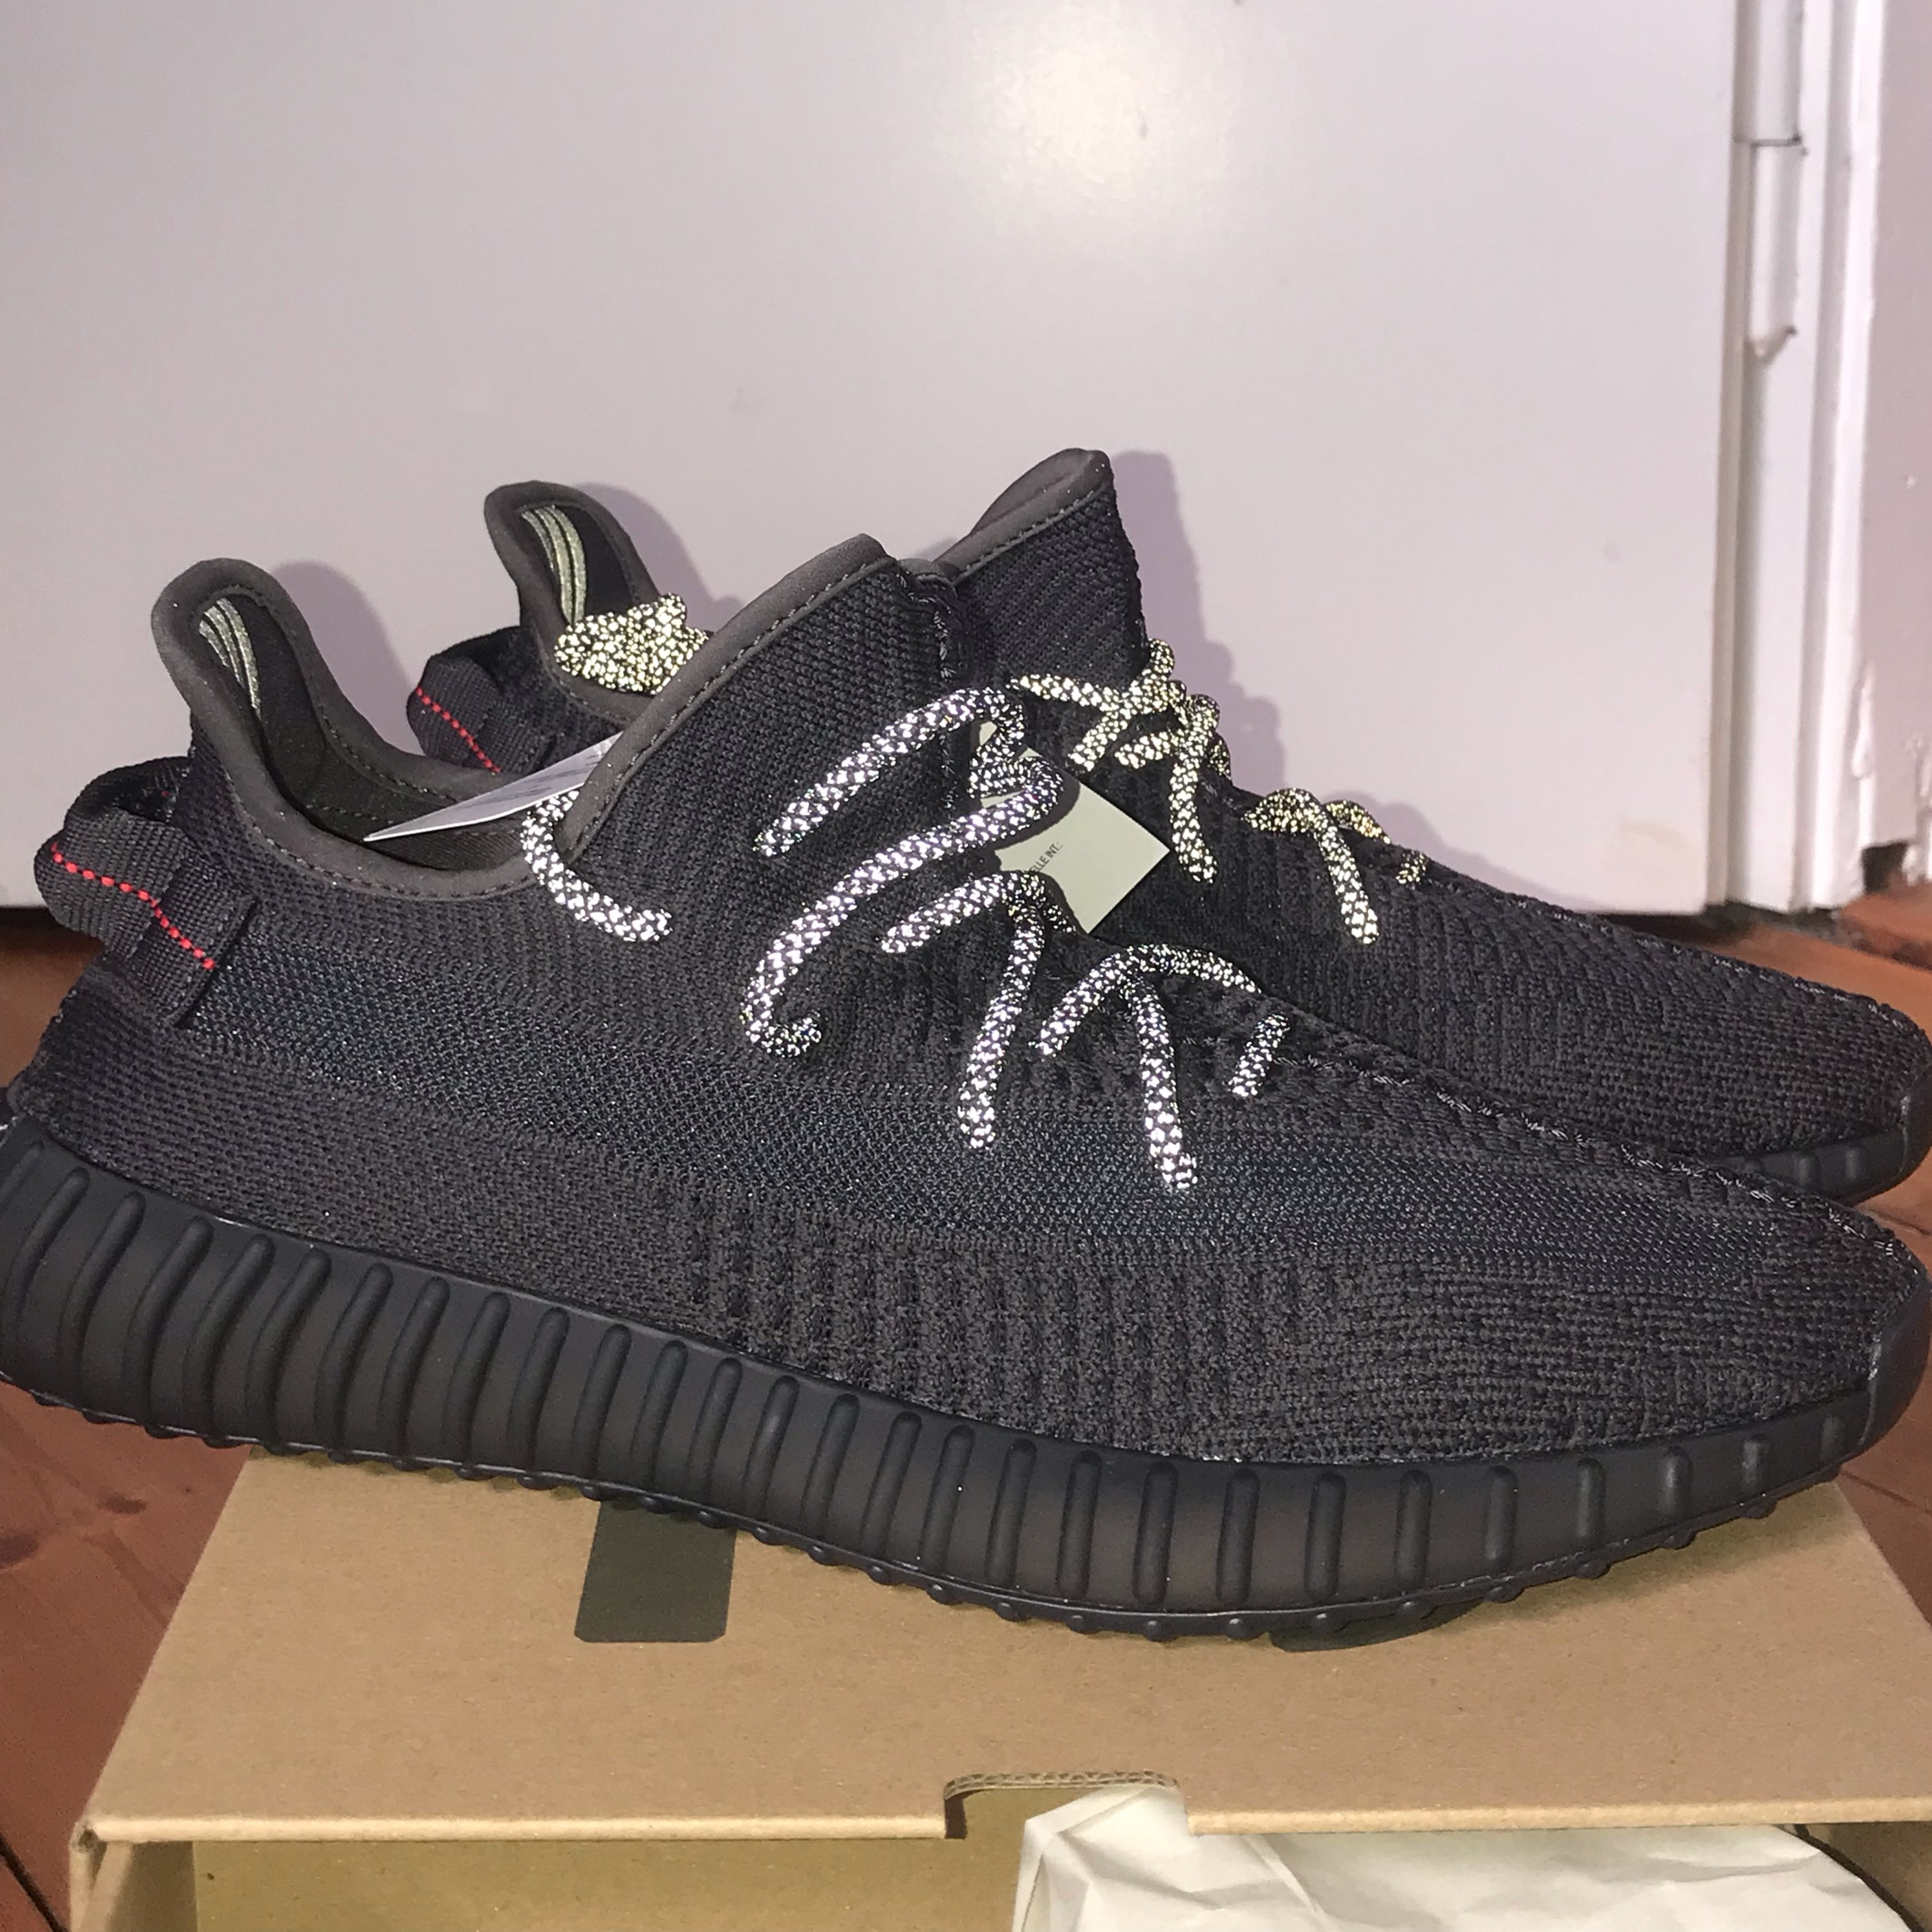 new products 3cd85 9058e Adidas Yeezy Boost 350 V2 Black